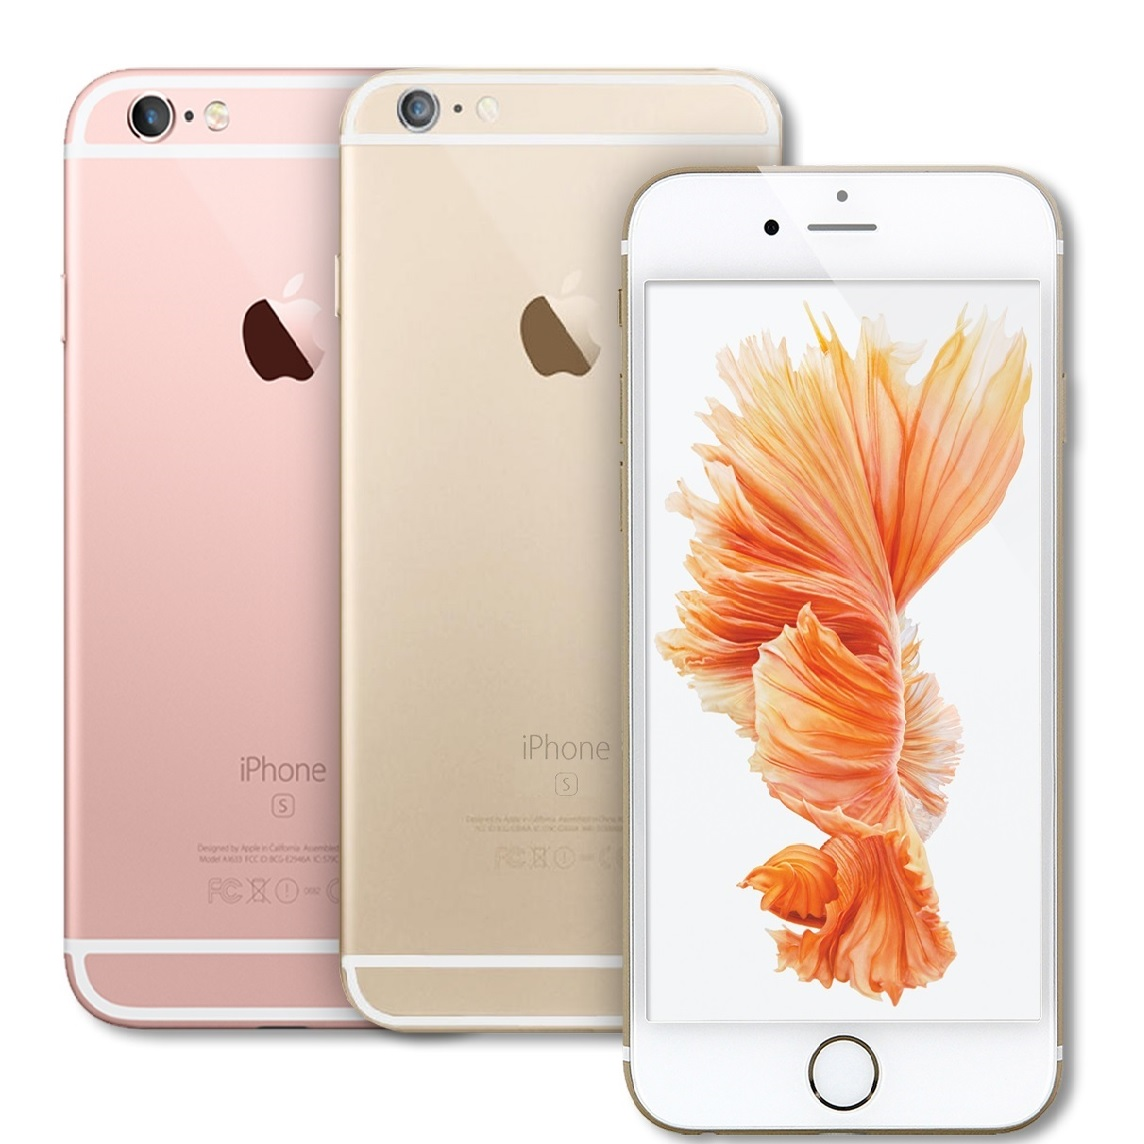 apple iphone 6s smartphone 16gb unlocked cell phone a1688. Black Bedroom Furniture Sets. Home Design Ideas